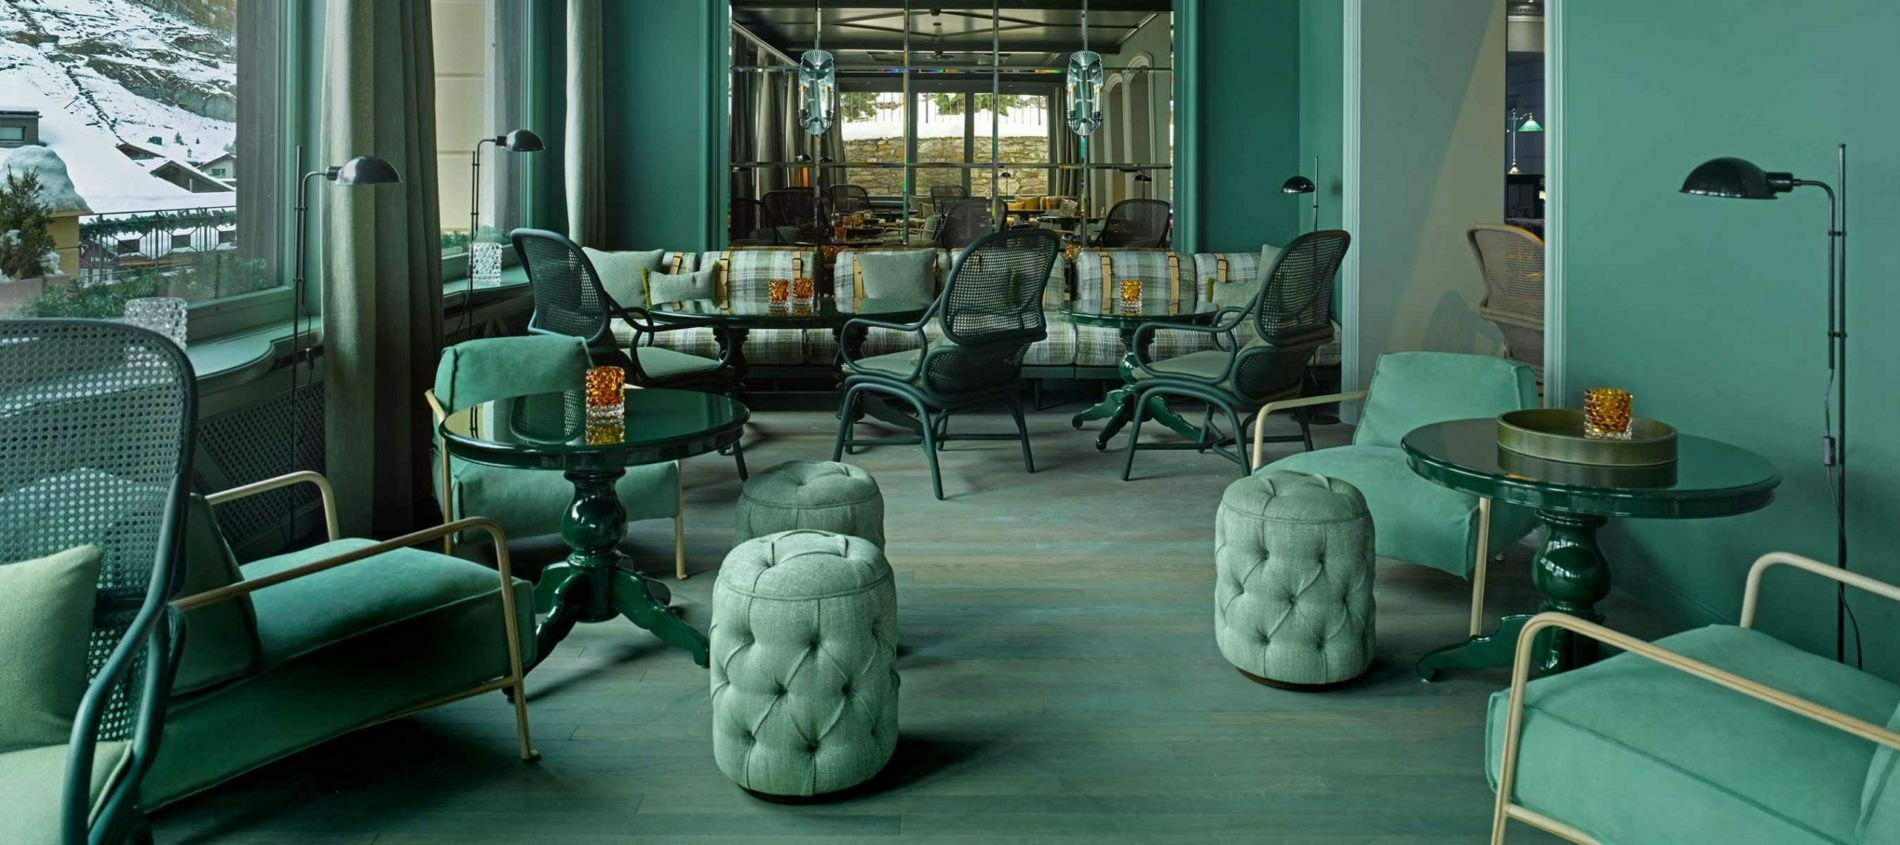 Pale Turquoise room with Baby Buttoned Drums in the mountains